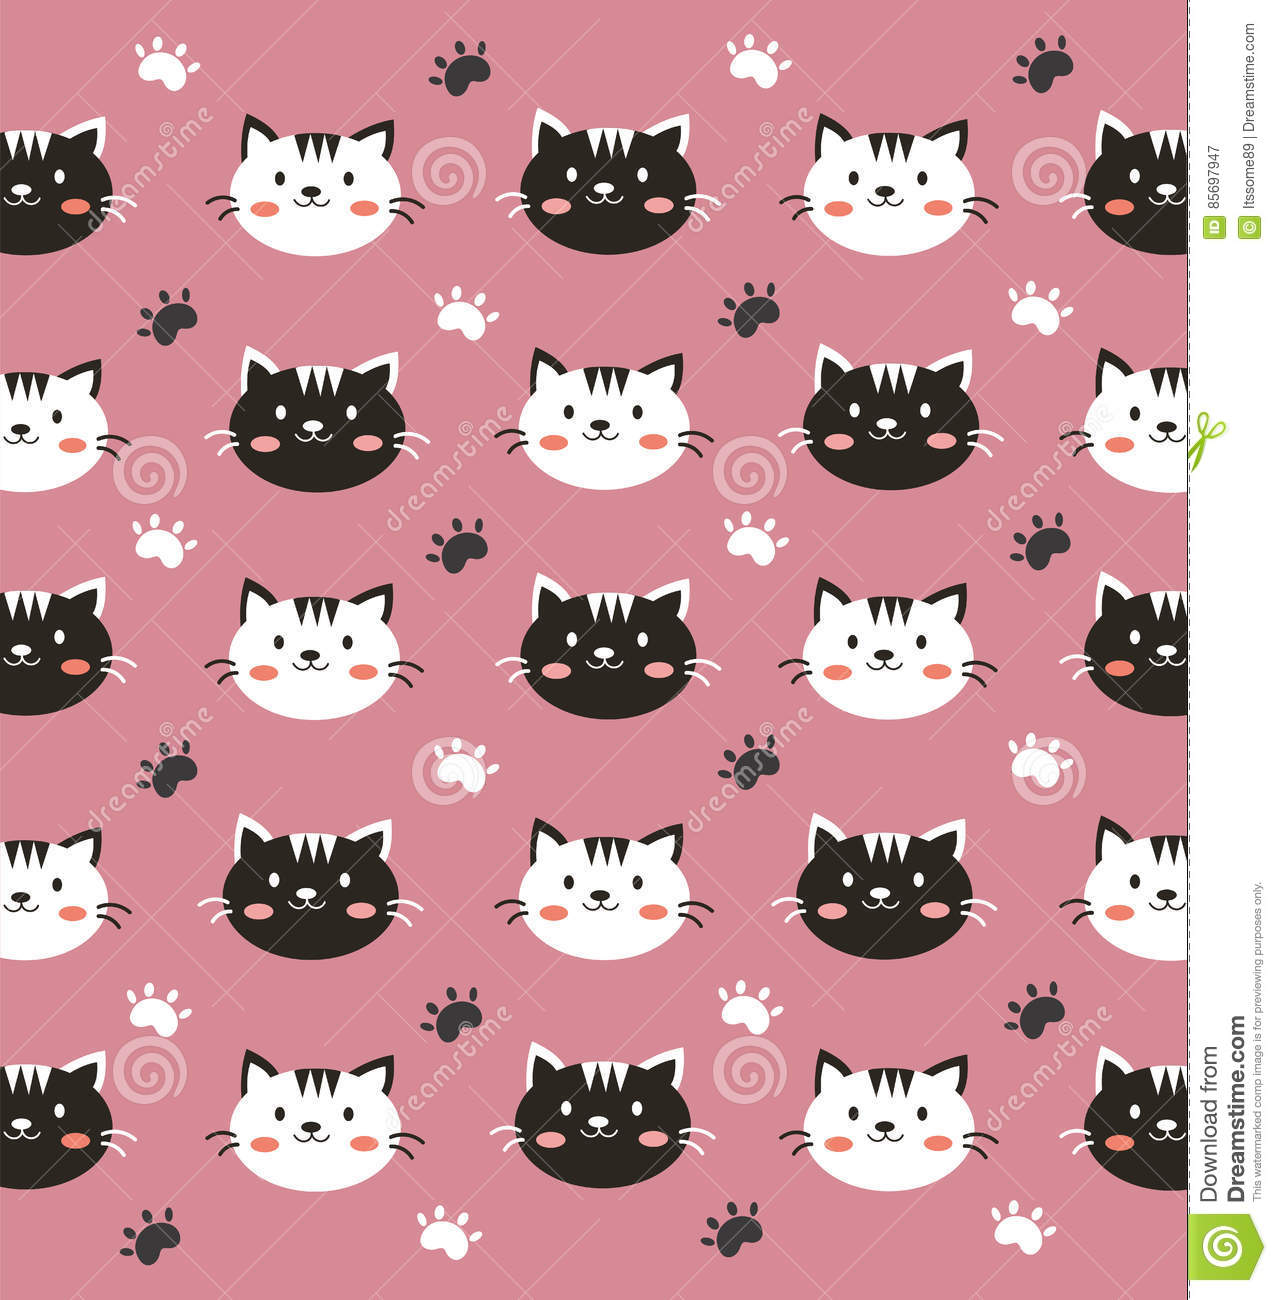 Black And White Cat Wallpaper Stock Vector Illustration Of